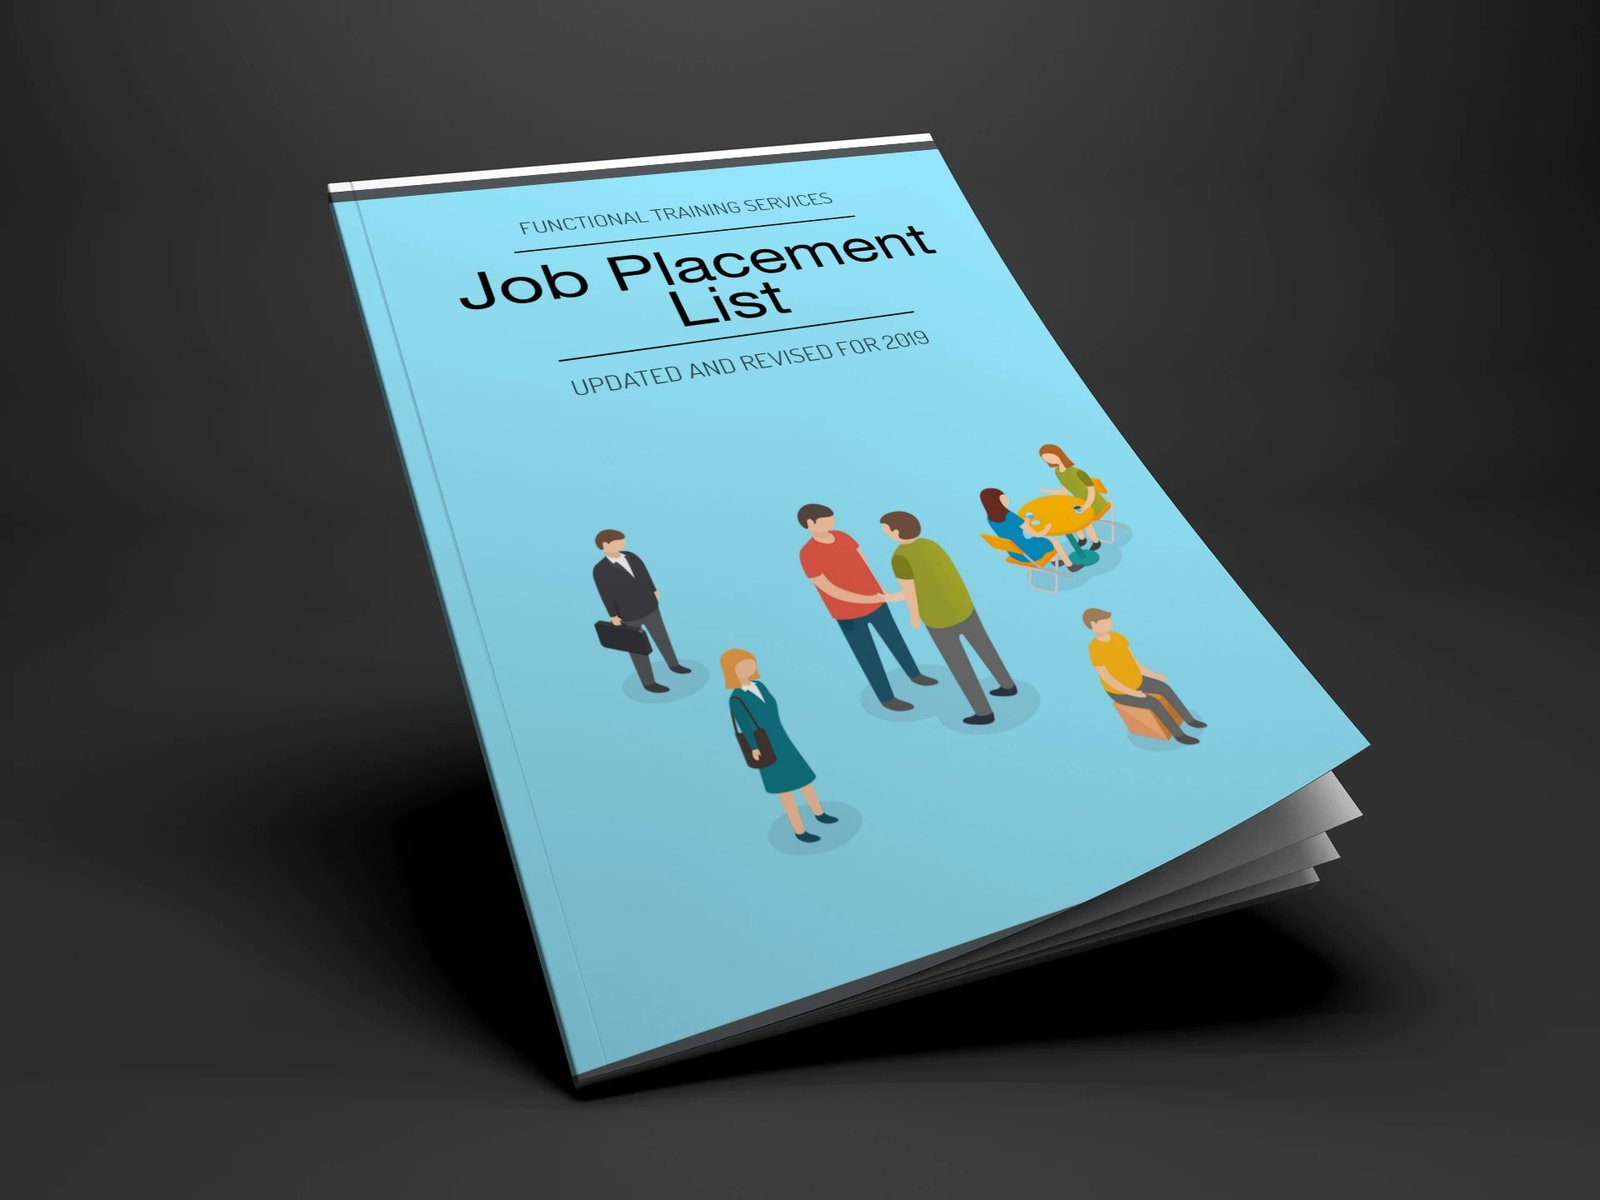 Job Placement List, Functional Training Services